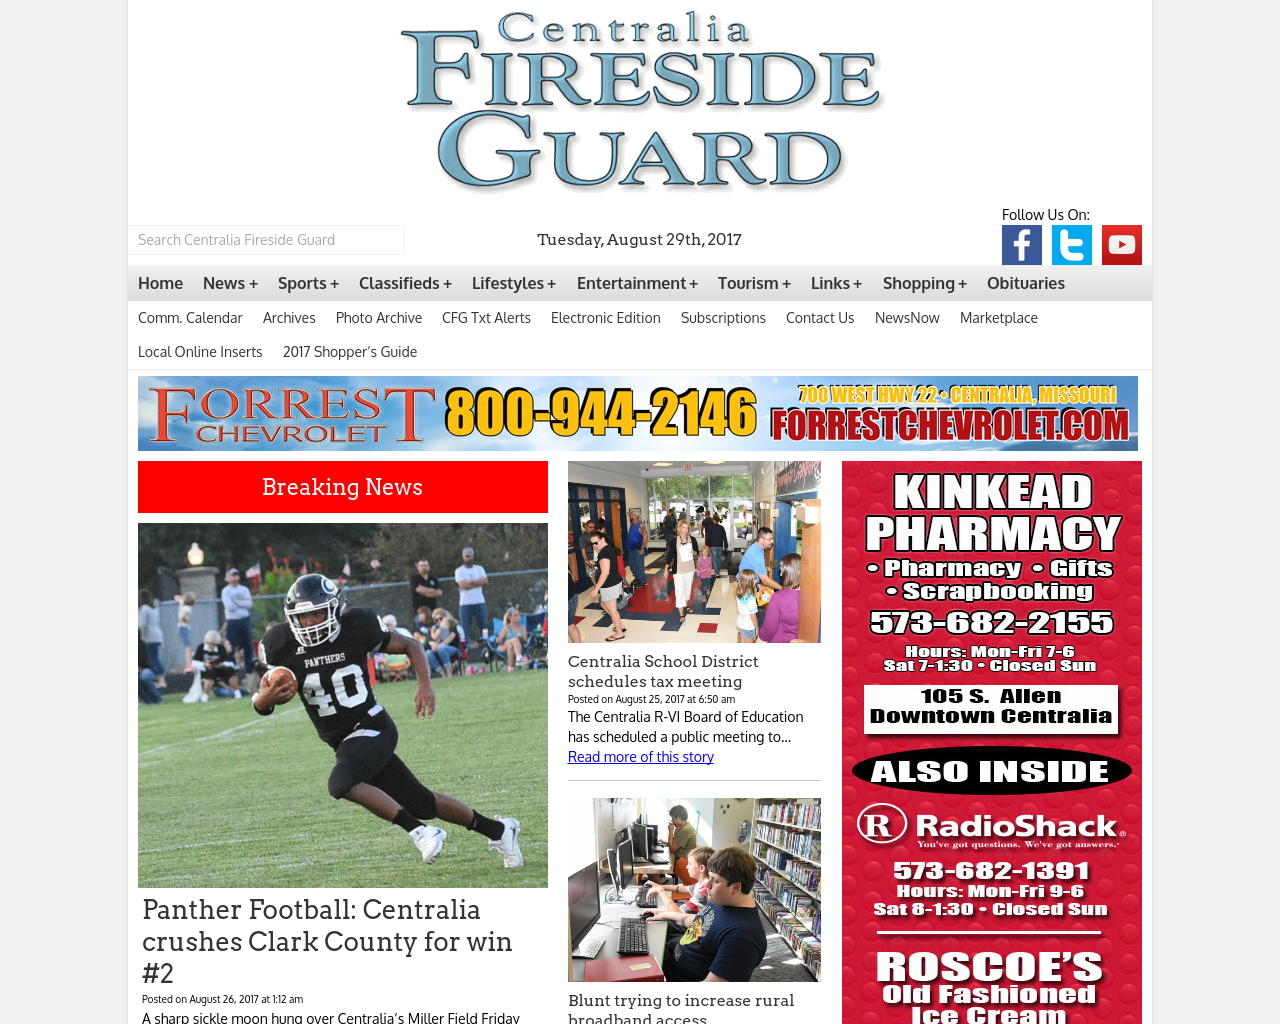 Centralia-FIRESIDE-GUARD-Advertising-Reviews-Pricing